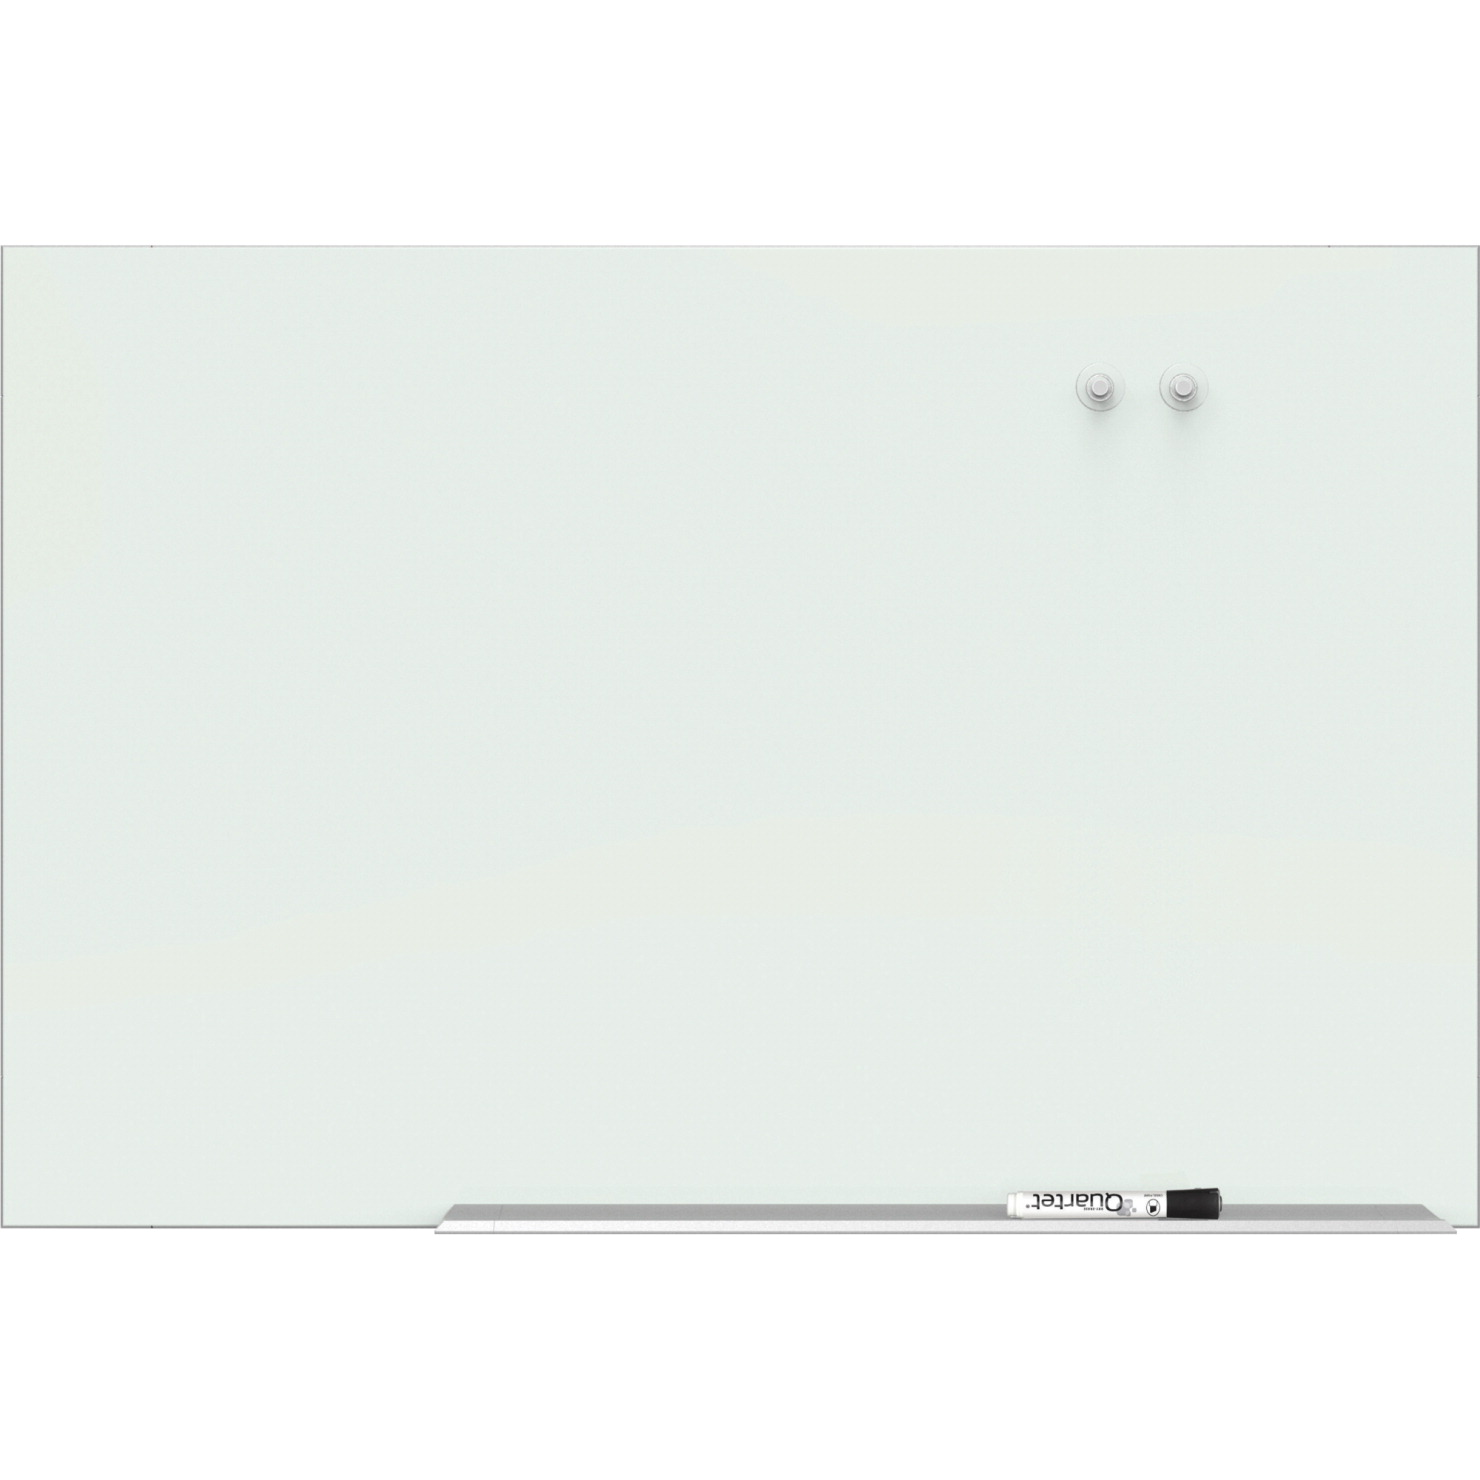 Quartet Element Magnetic Glass Dry-erase Board, 50 x 28 Inches, White